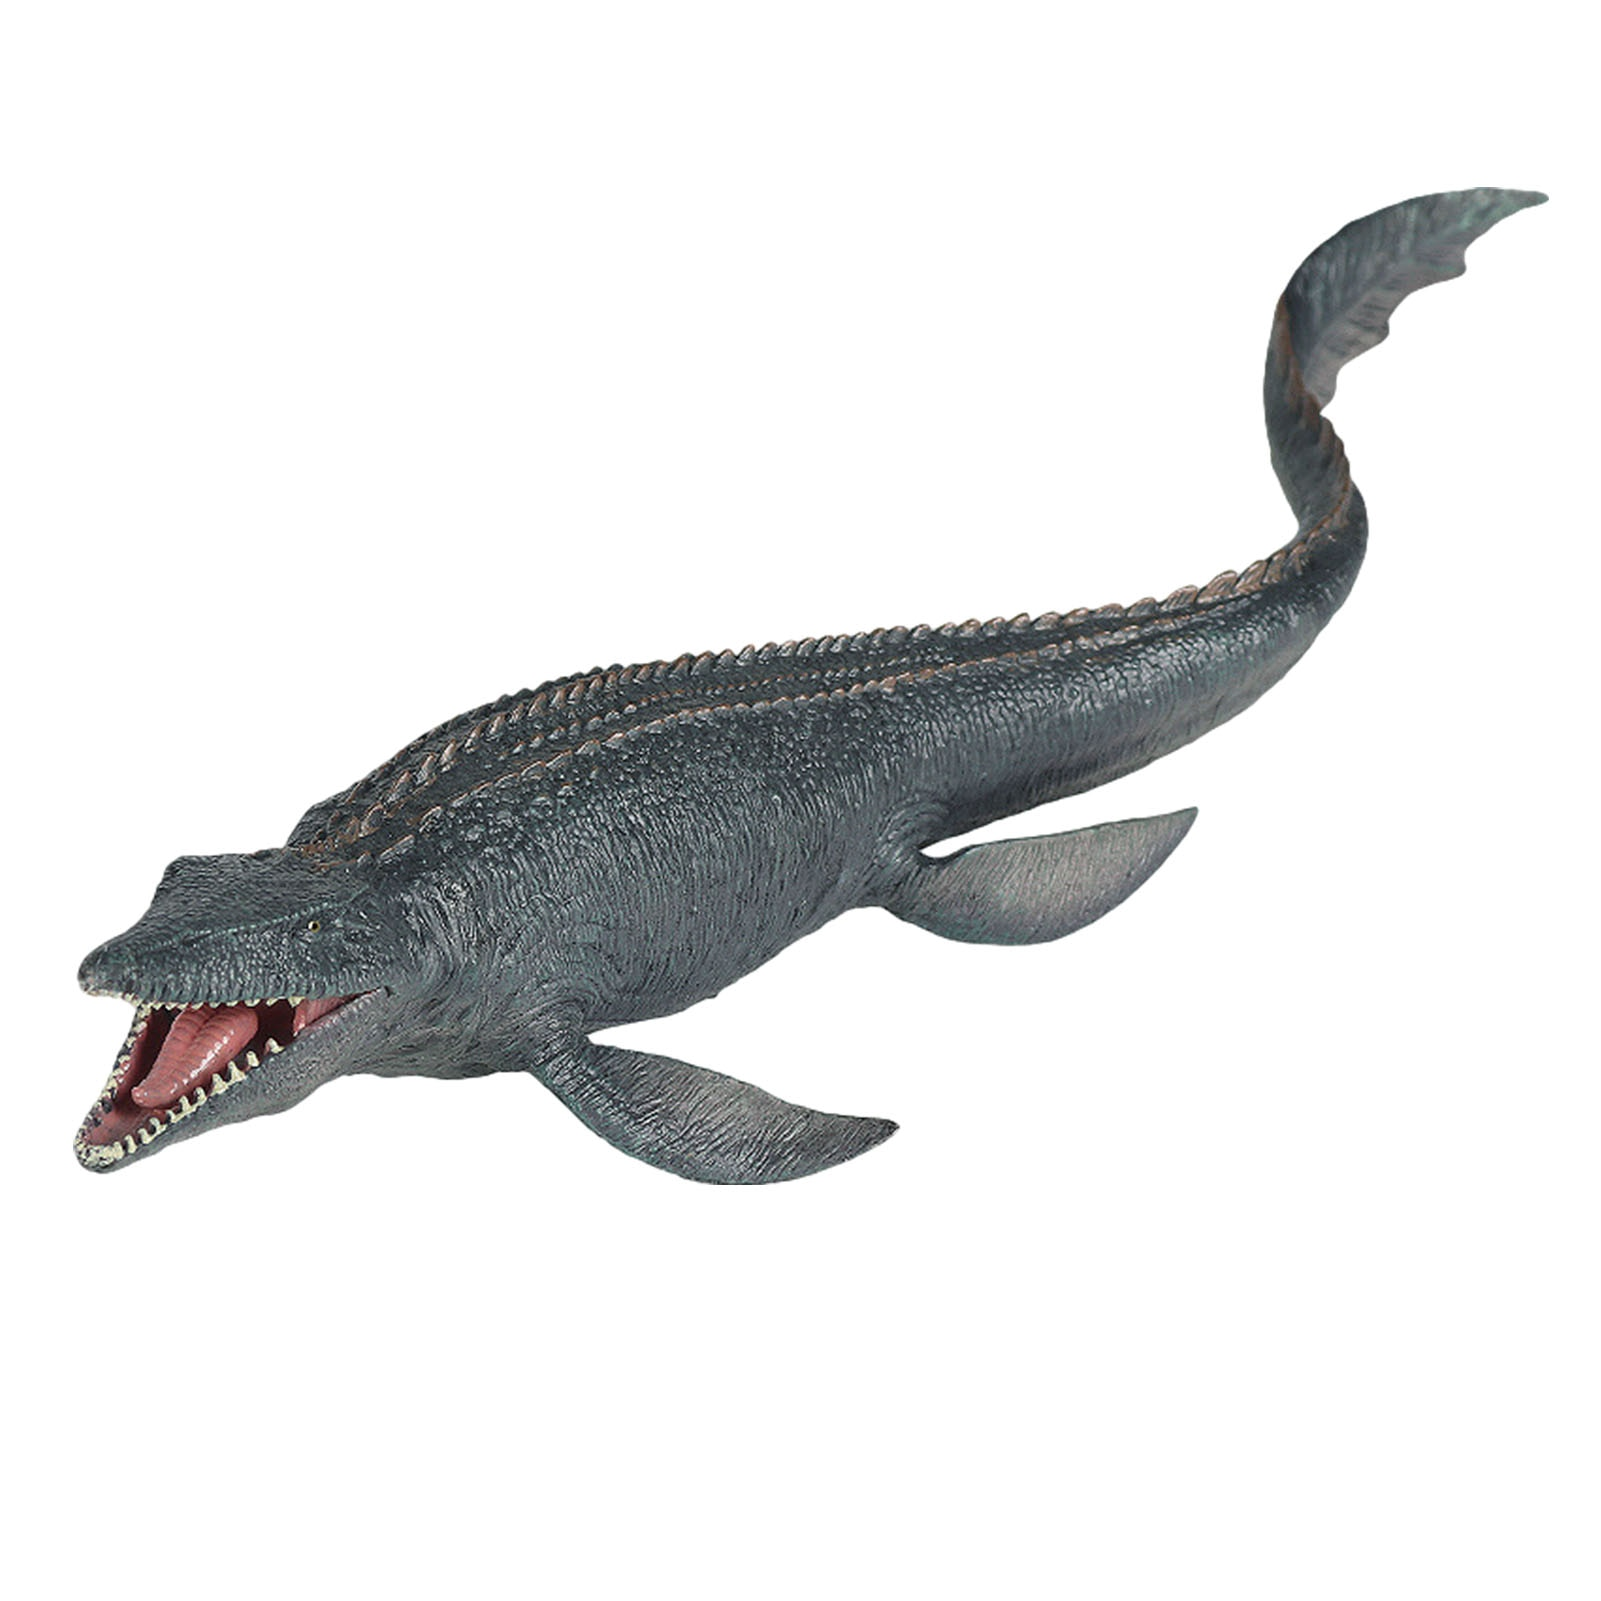 High Quality PVC Big Mosasaurus Dinosaur Figure Realistic Ocean Animal Model Dino Toy Collection Dinosaur Toys For Children lifelike dinosaur model static solid mosasaurus dinosaur realistic figures perfect toys decoration for party favor kid toy gift